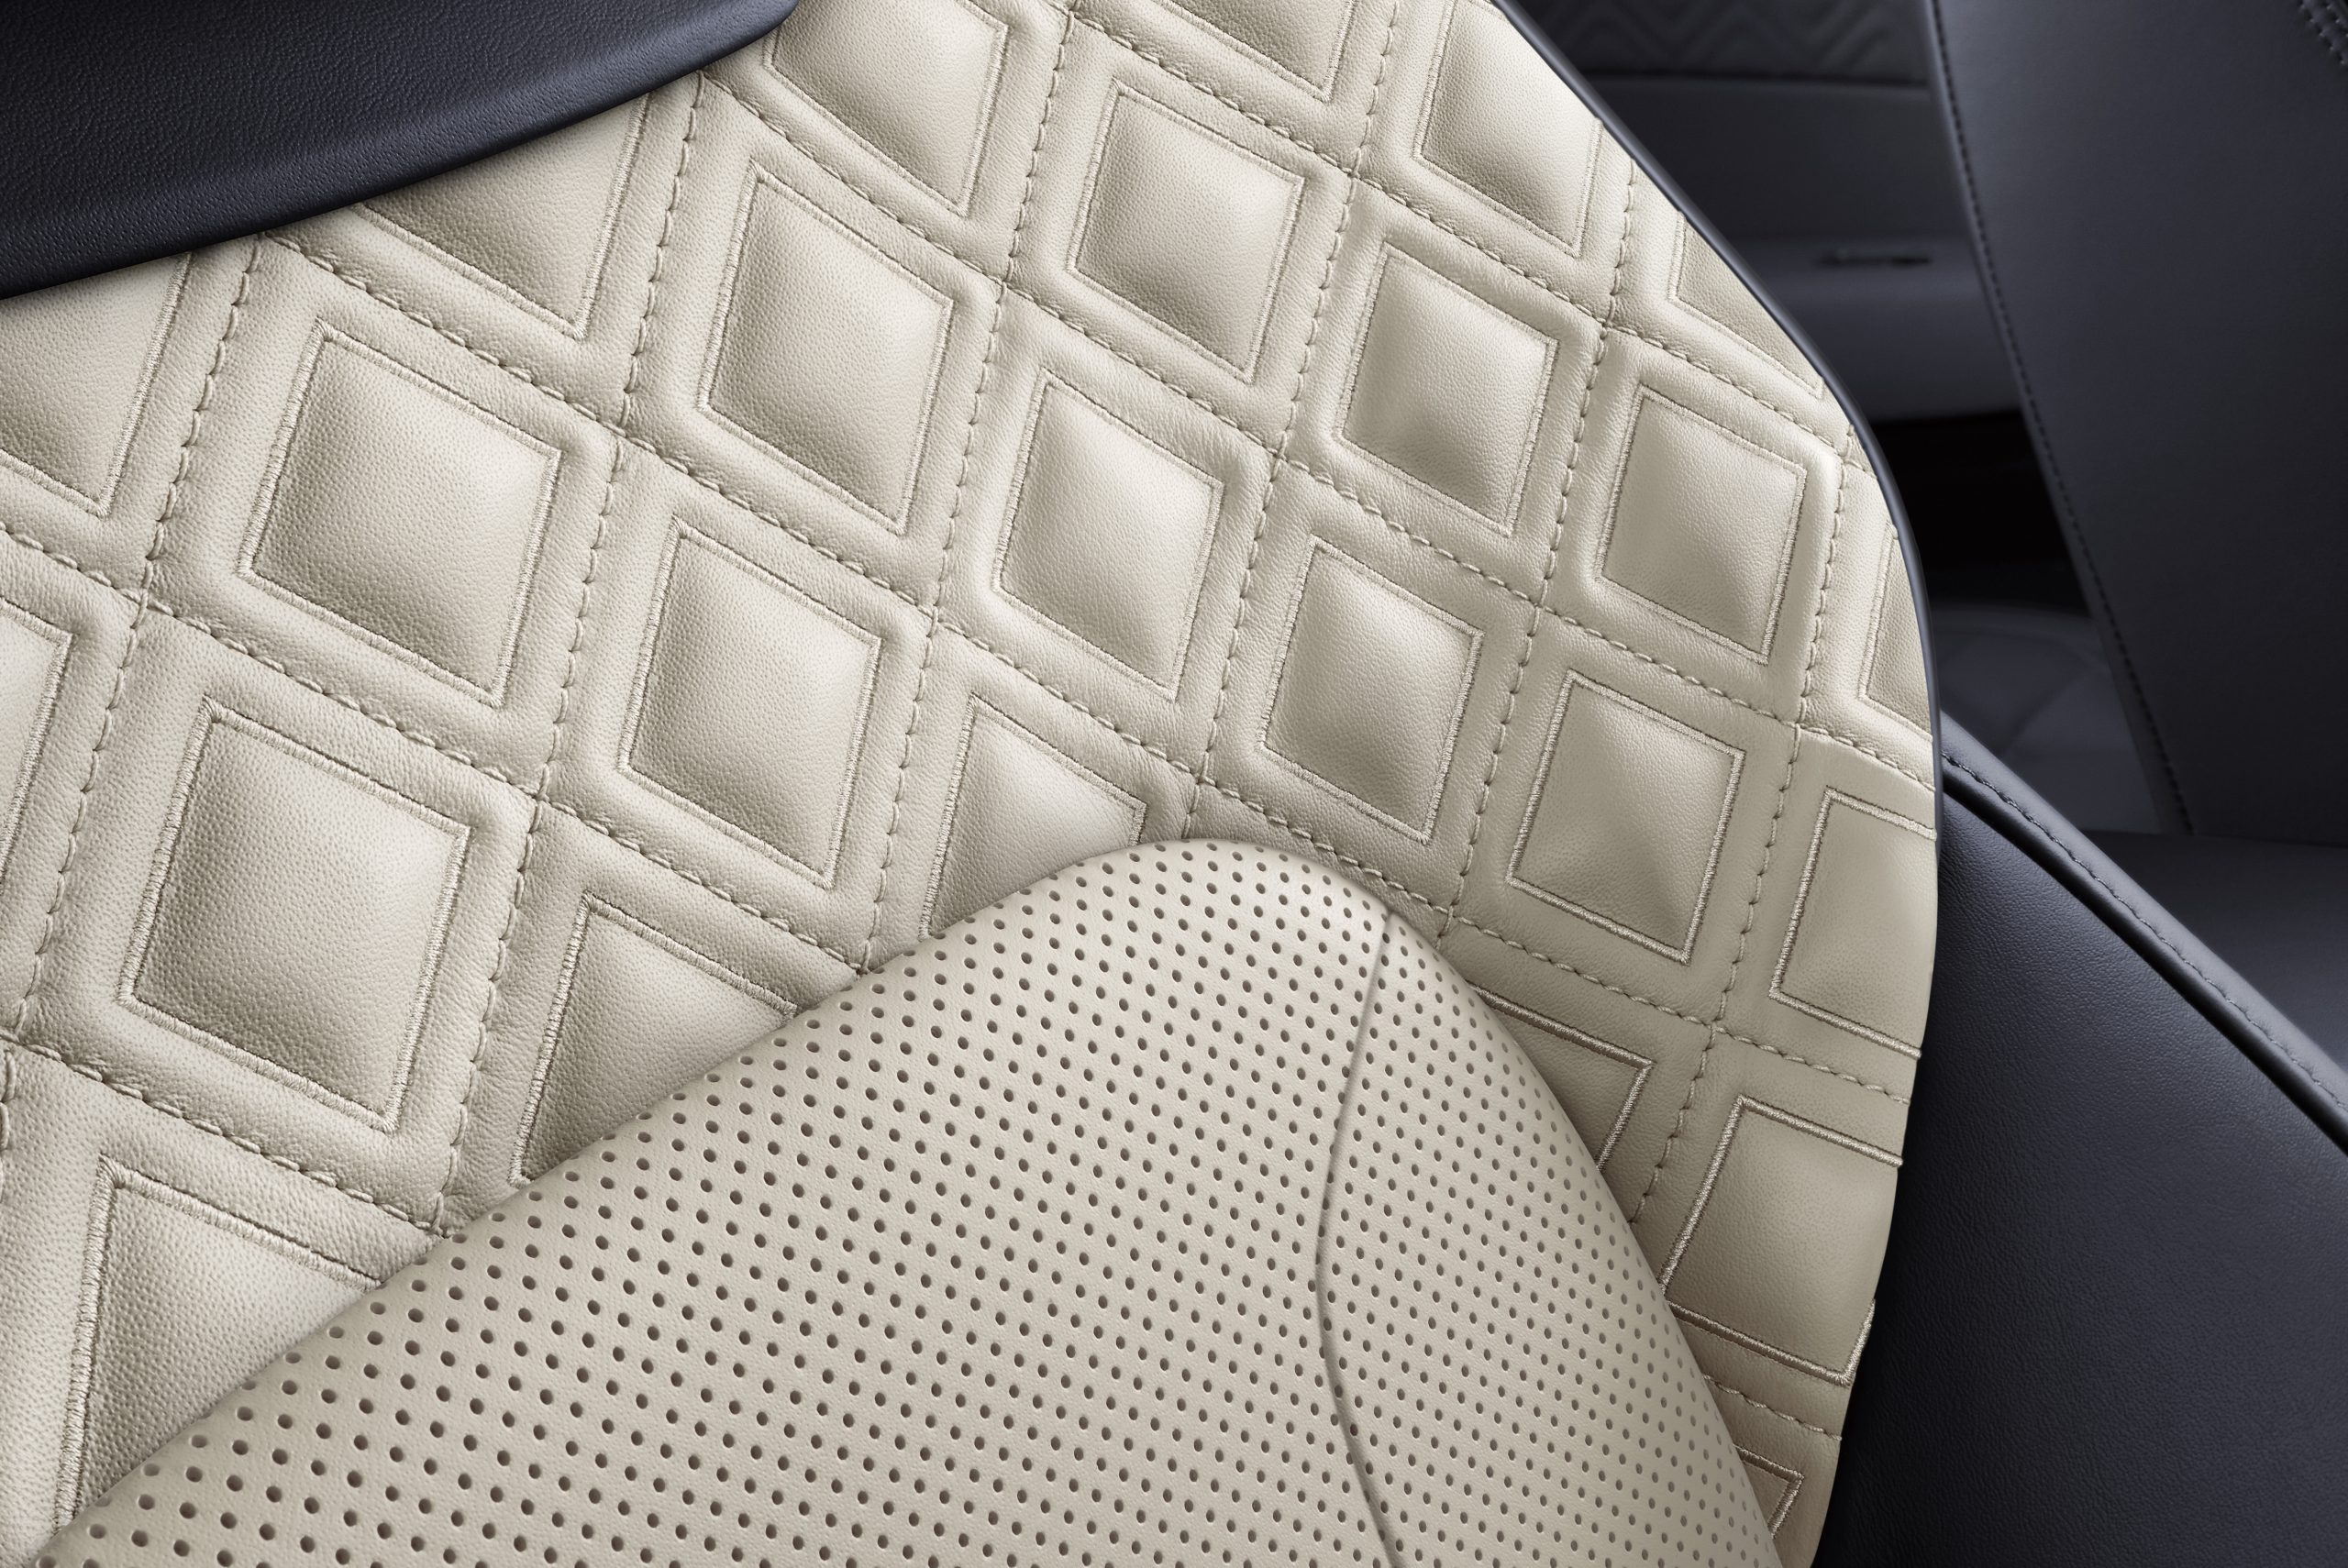 Bentley Continental GT leathered seat picture